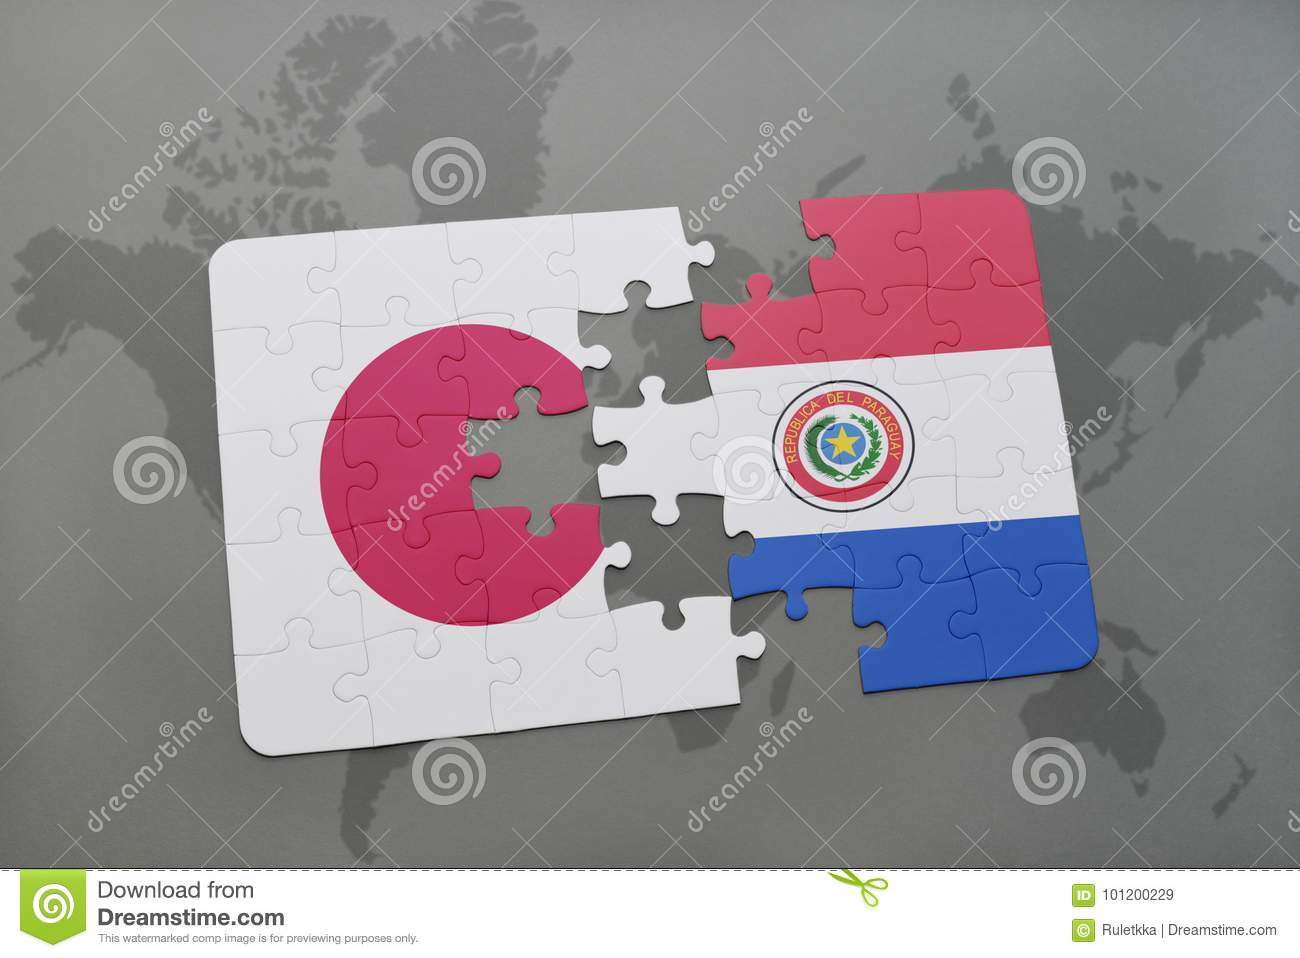 puzzle with the national flag of japan and paraguay on a world map background.